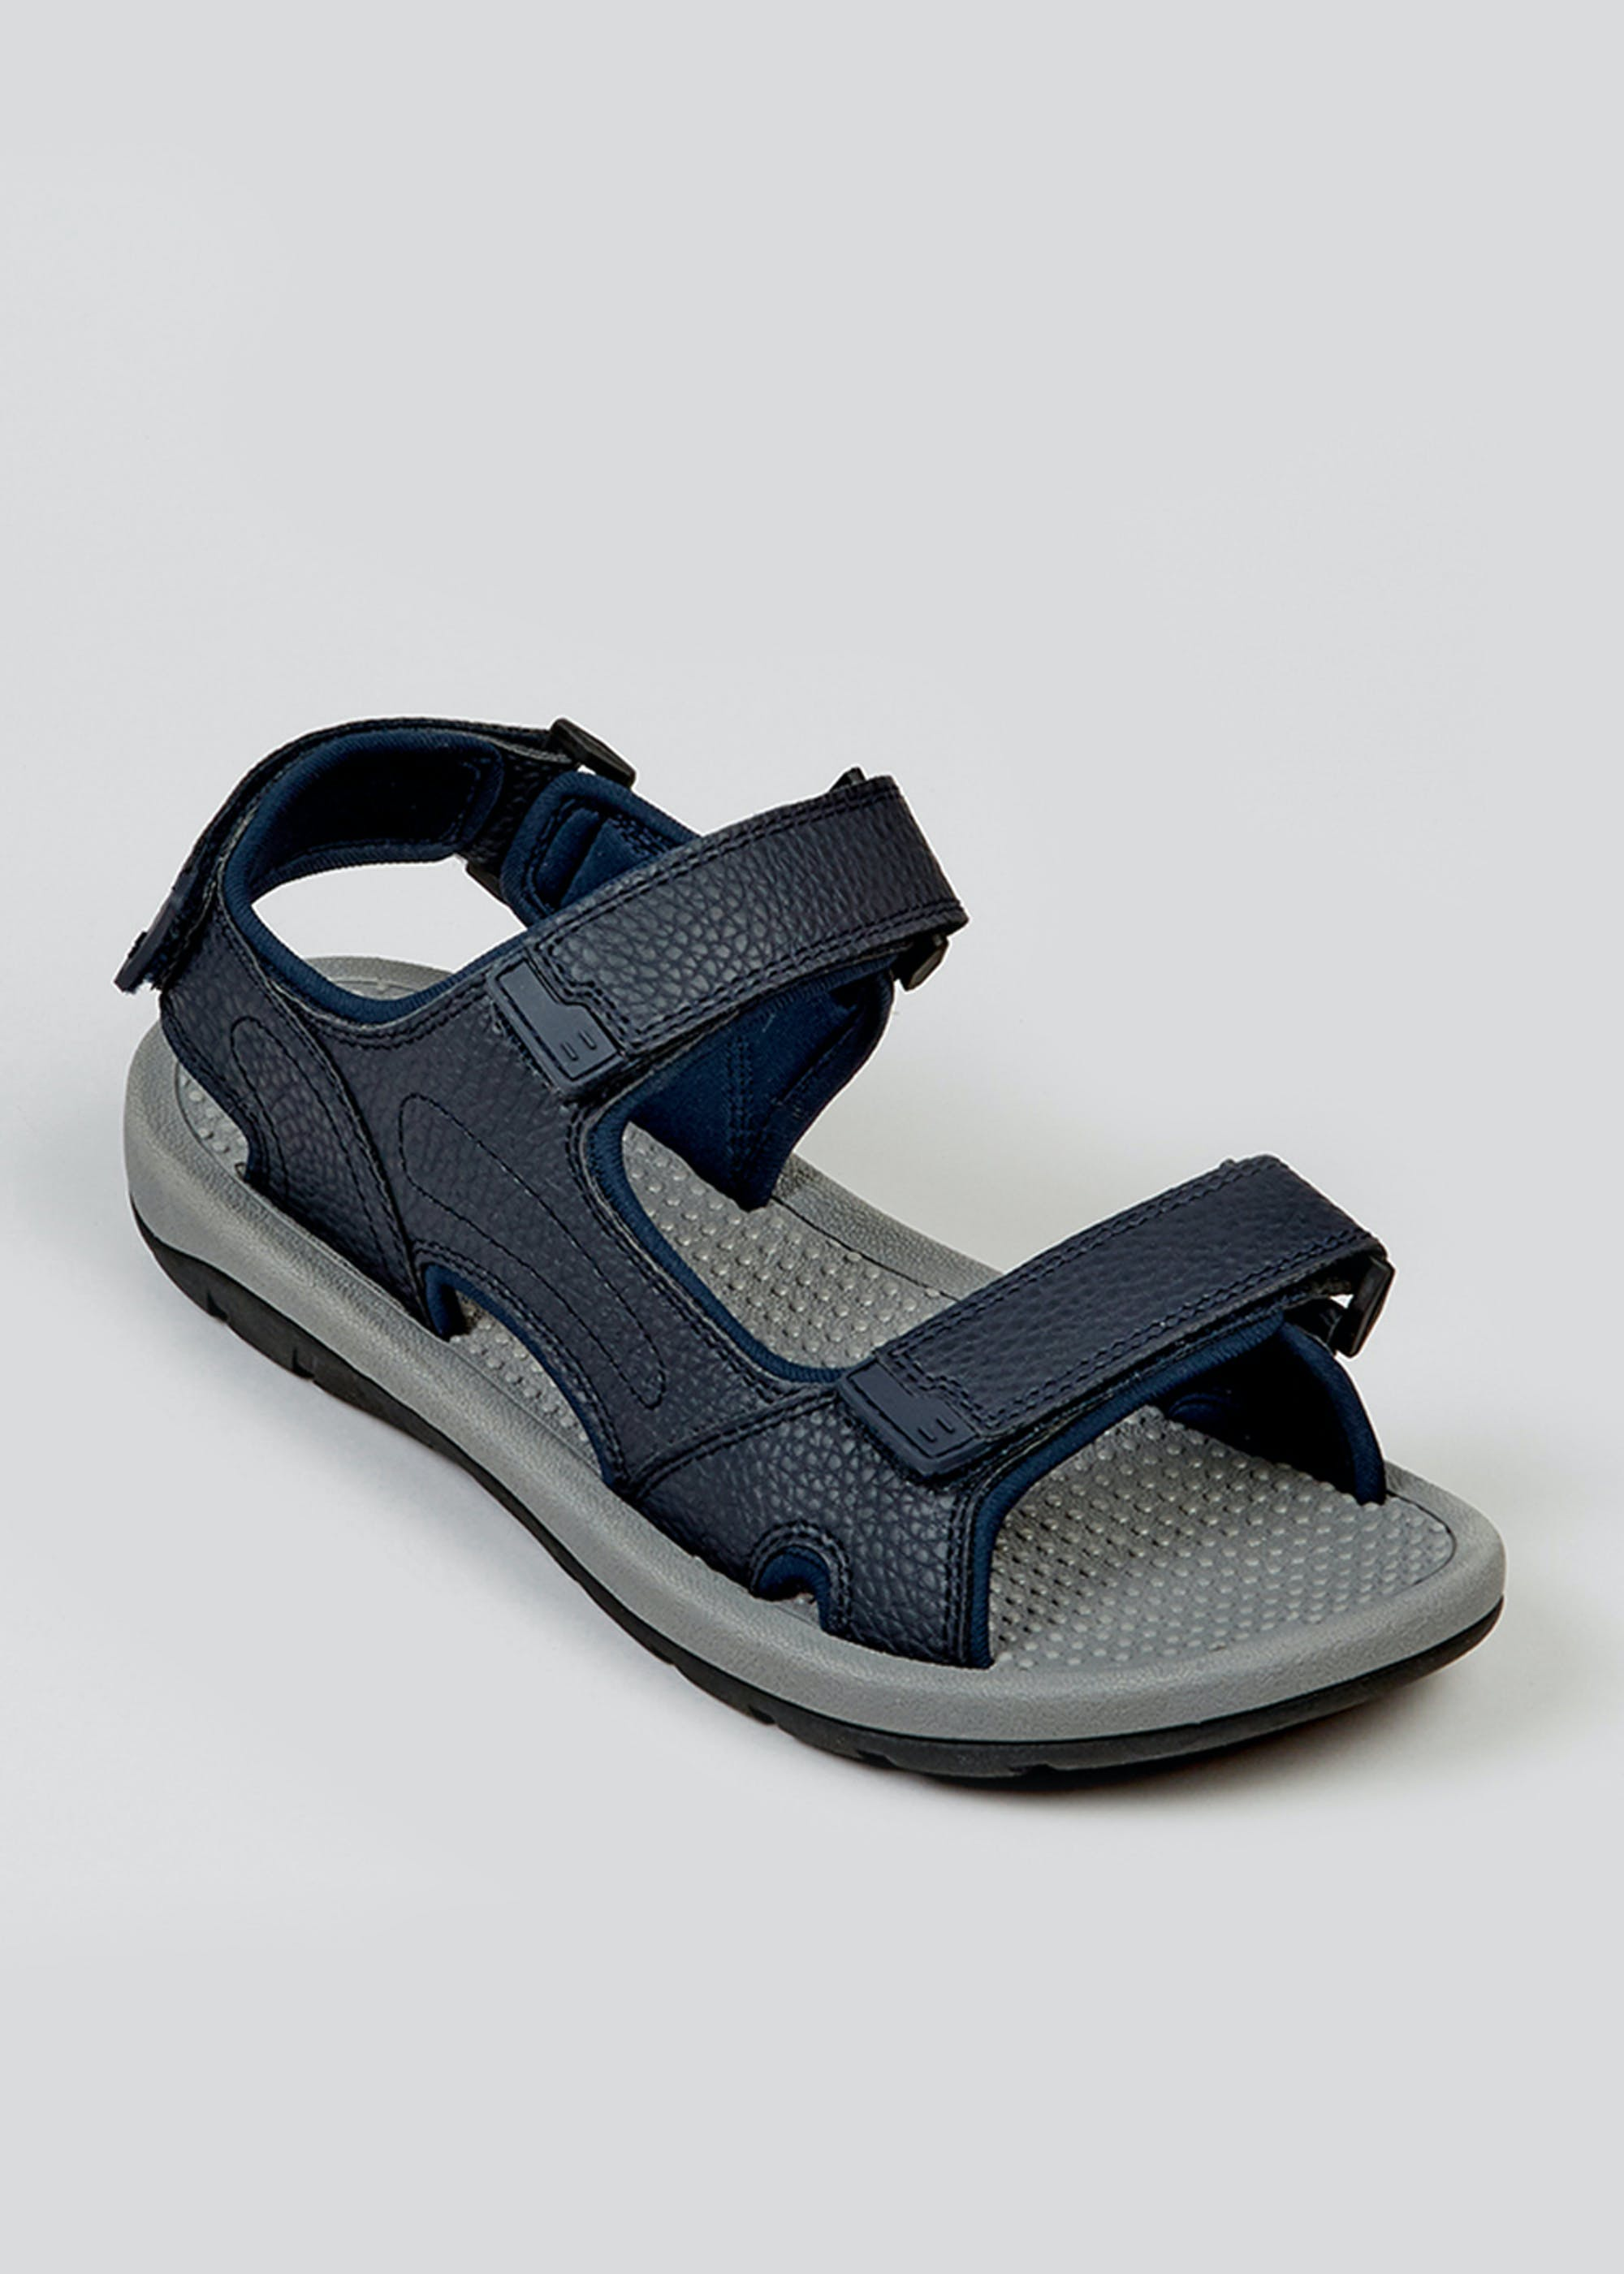 Navy Adventure Sandals Navy 3aWtuI